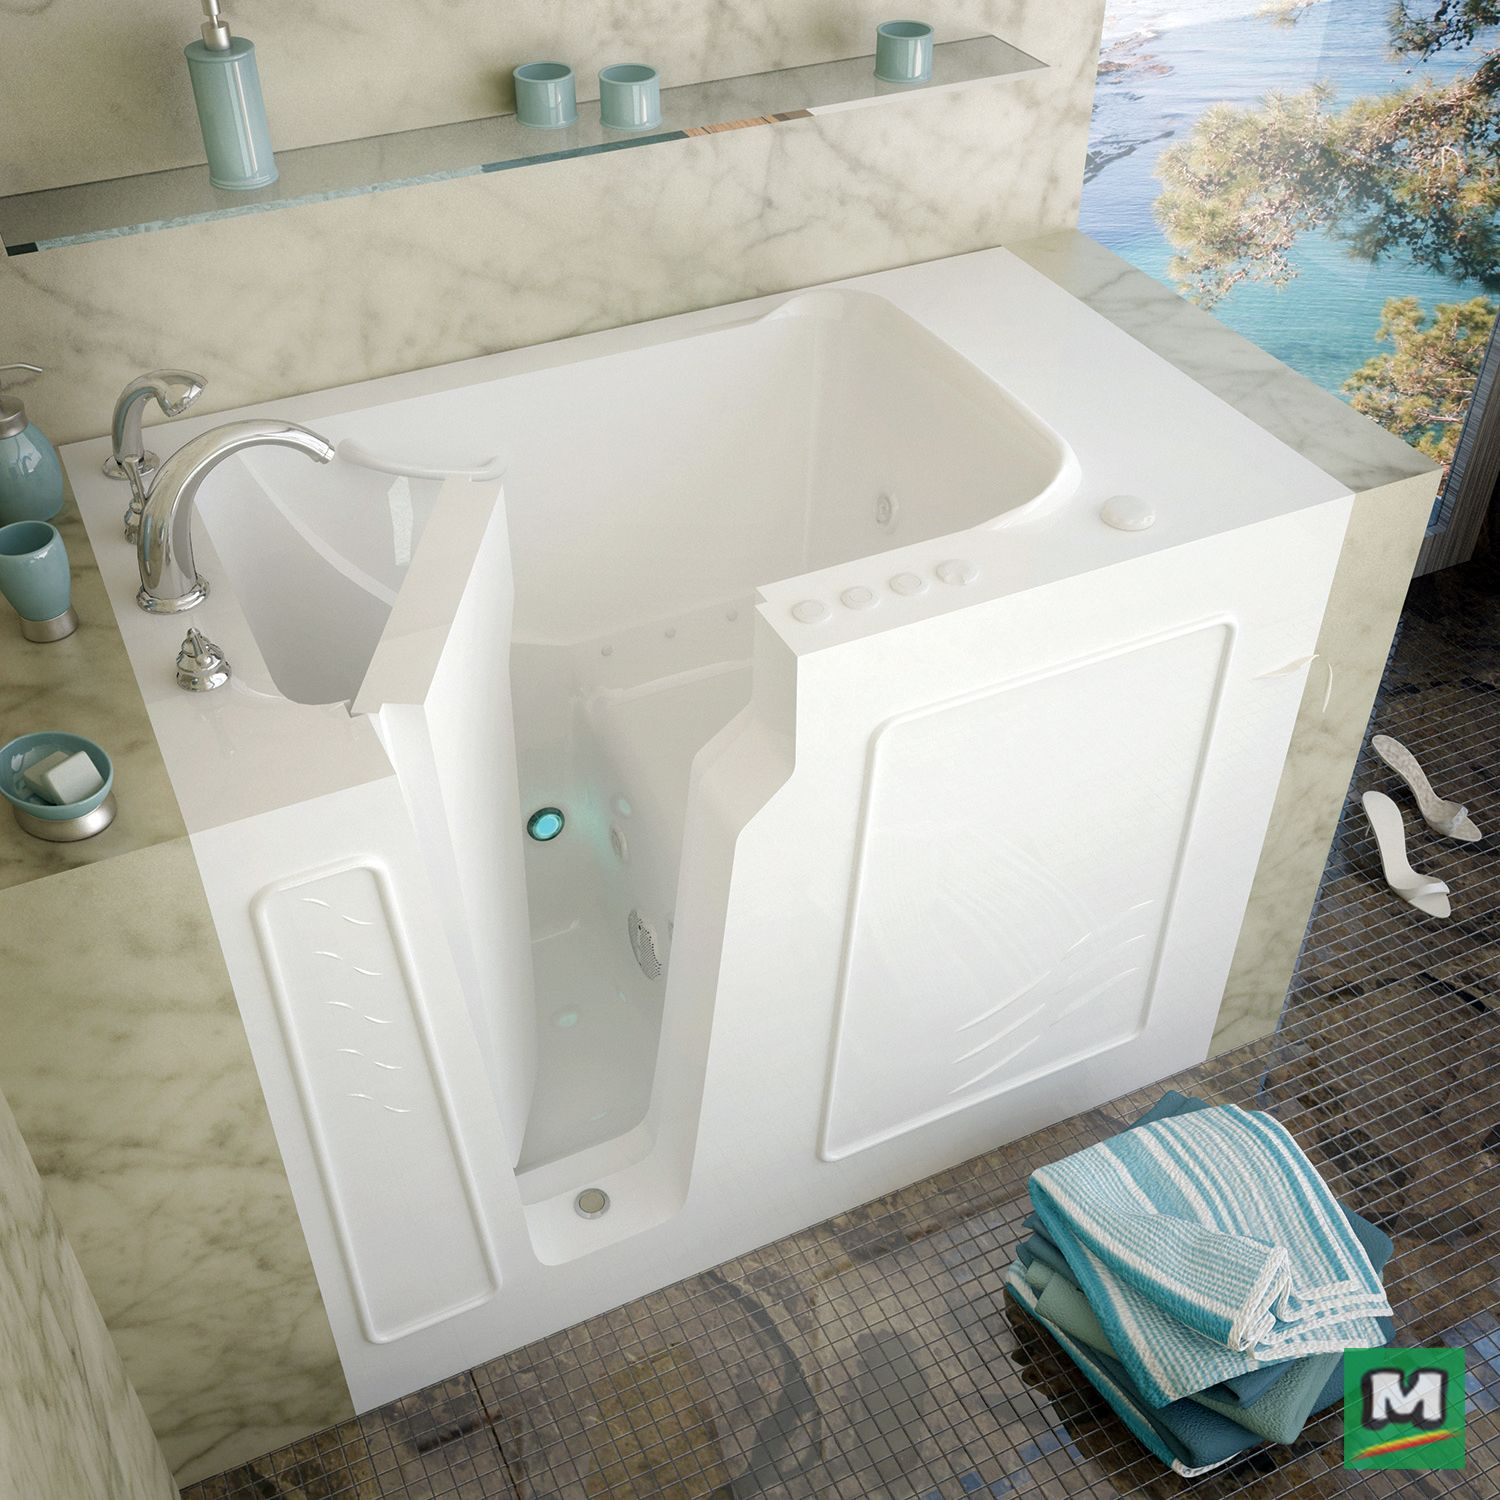 After A Long Day Take A Break In This Meditub 52 X 29 Dual Massage Walk In Bathtub Equipped With 16 Air Bu Walk In Bathtub Bathtub